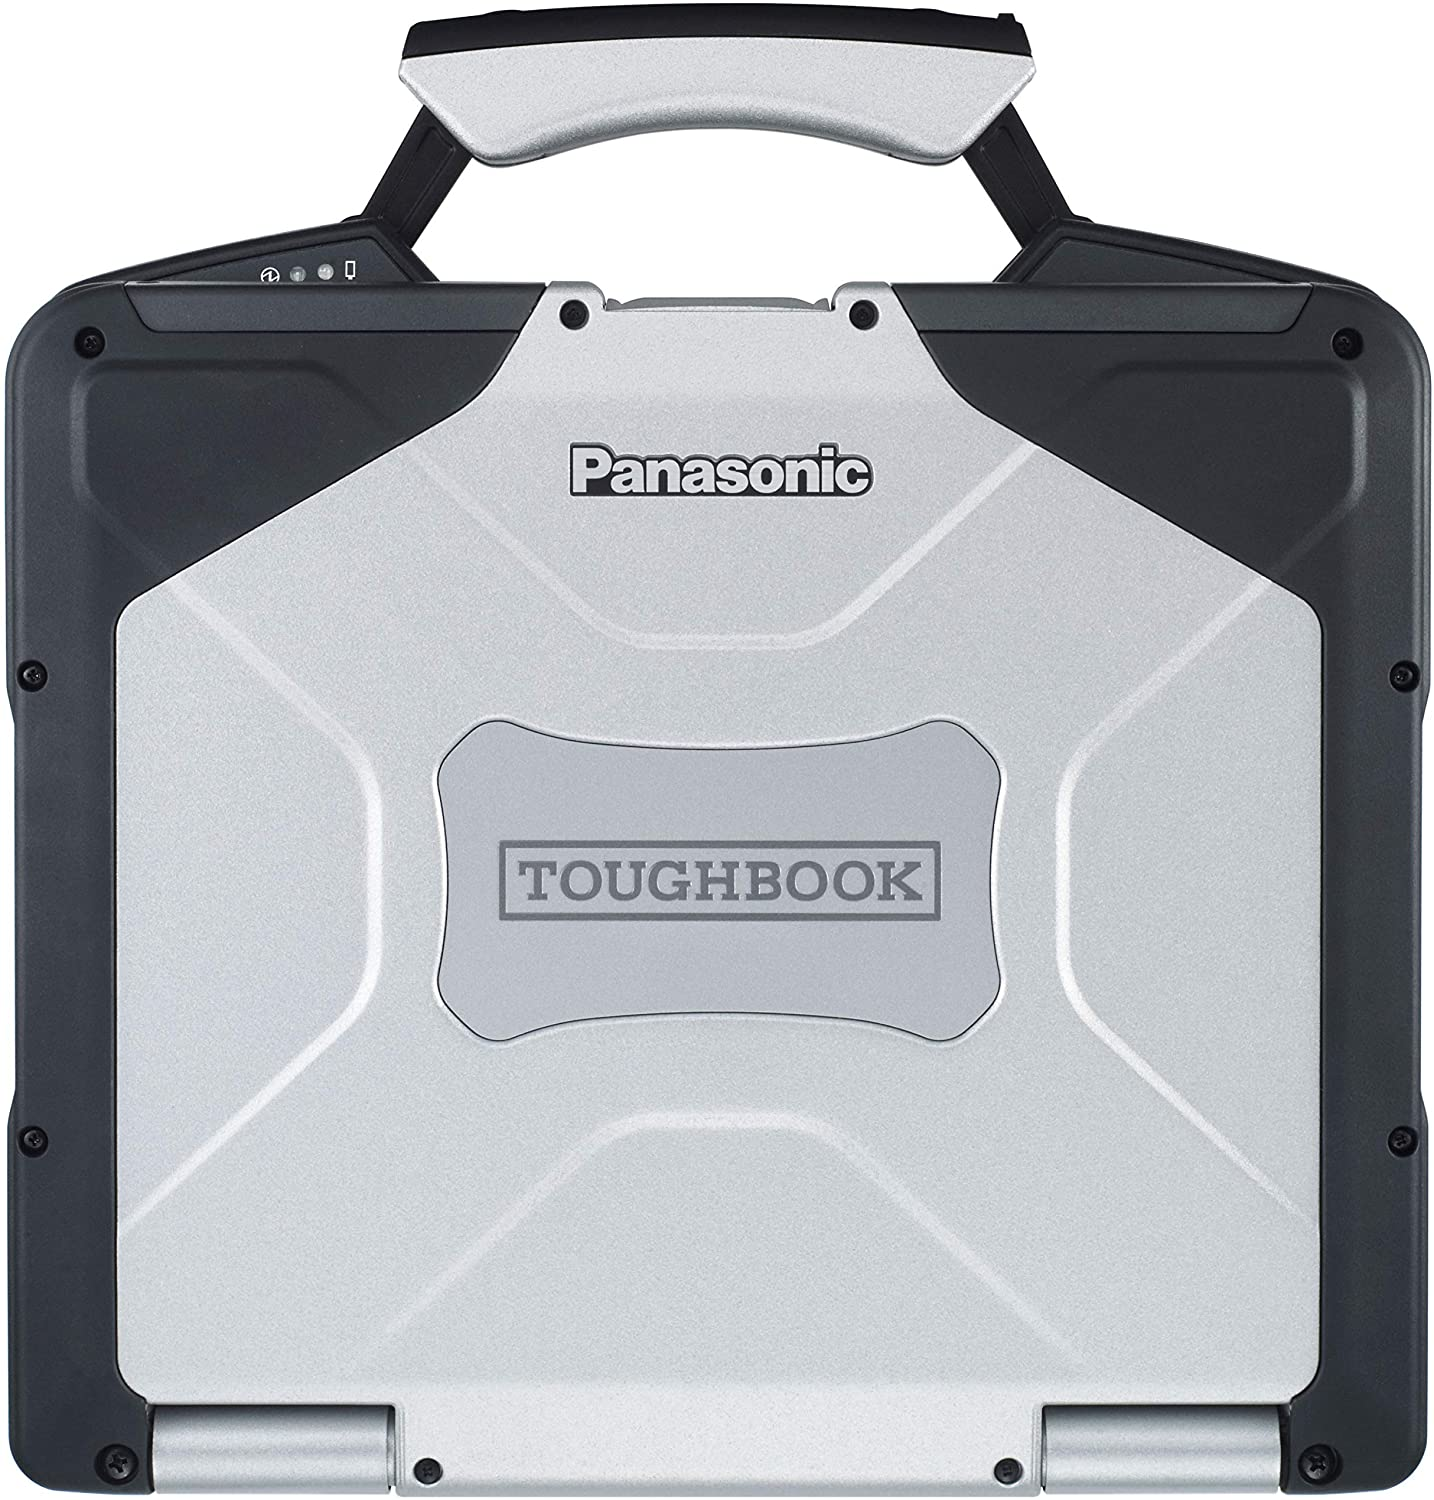 Panasonic Toughbook CF-31 MK4, i5-3340M @2.8GHz, 13.1